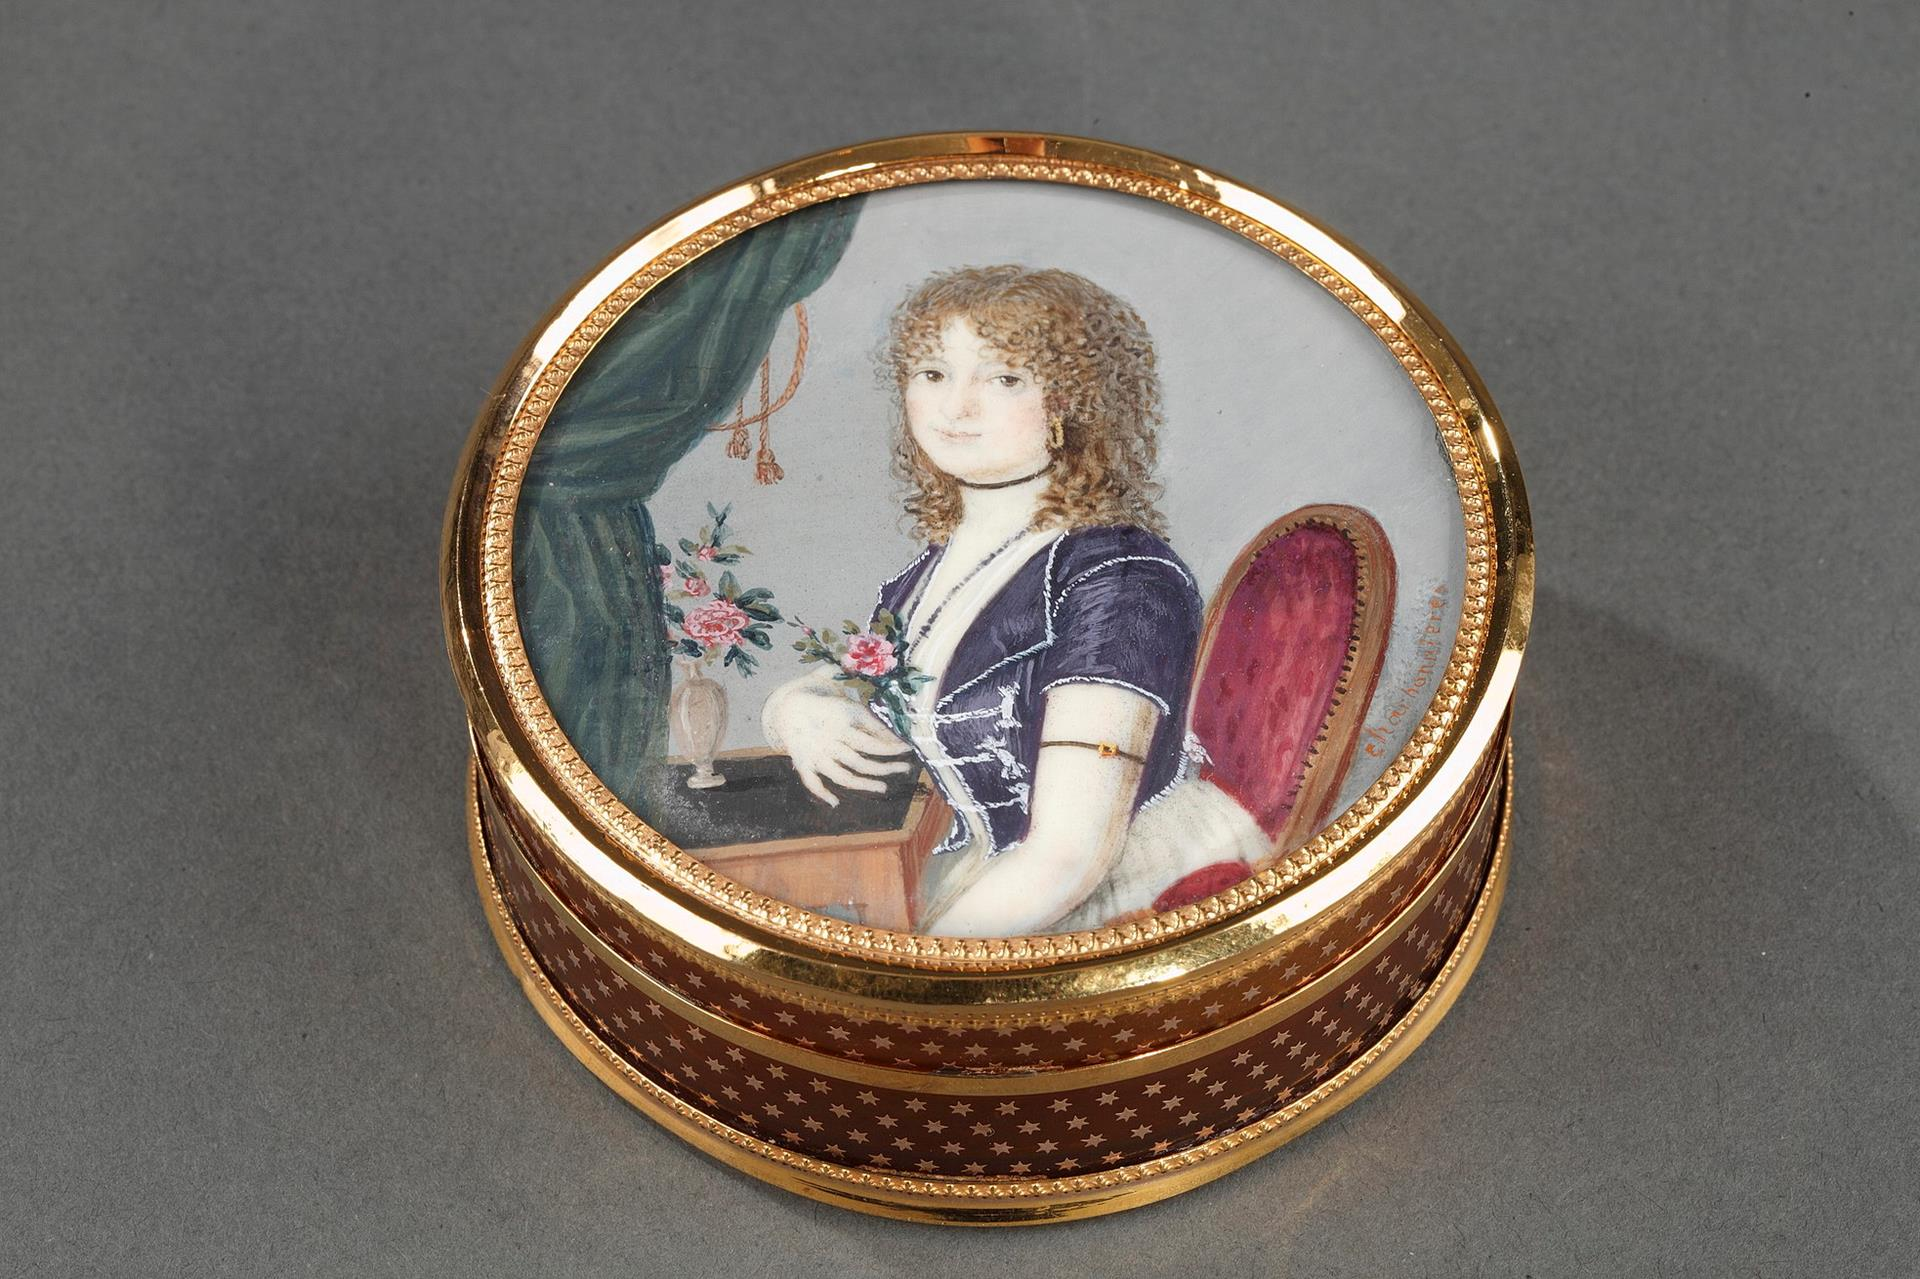 French gold-mounted tortoiseshell with miniature signed Charbonnières. Early 19th century